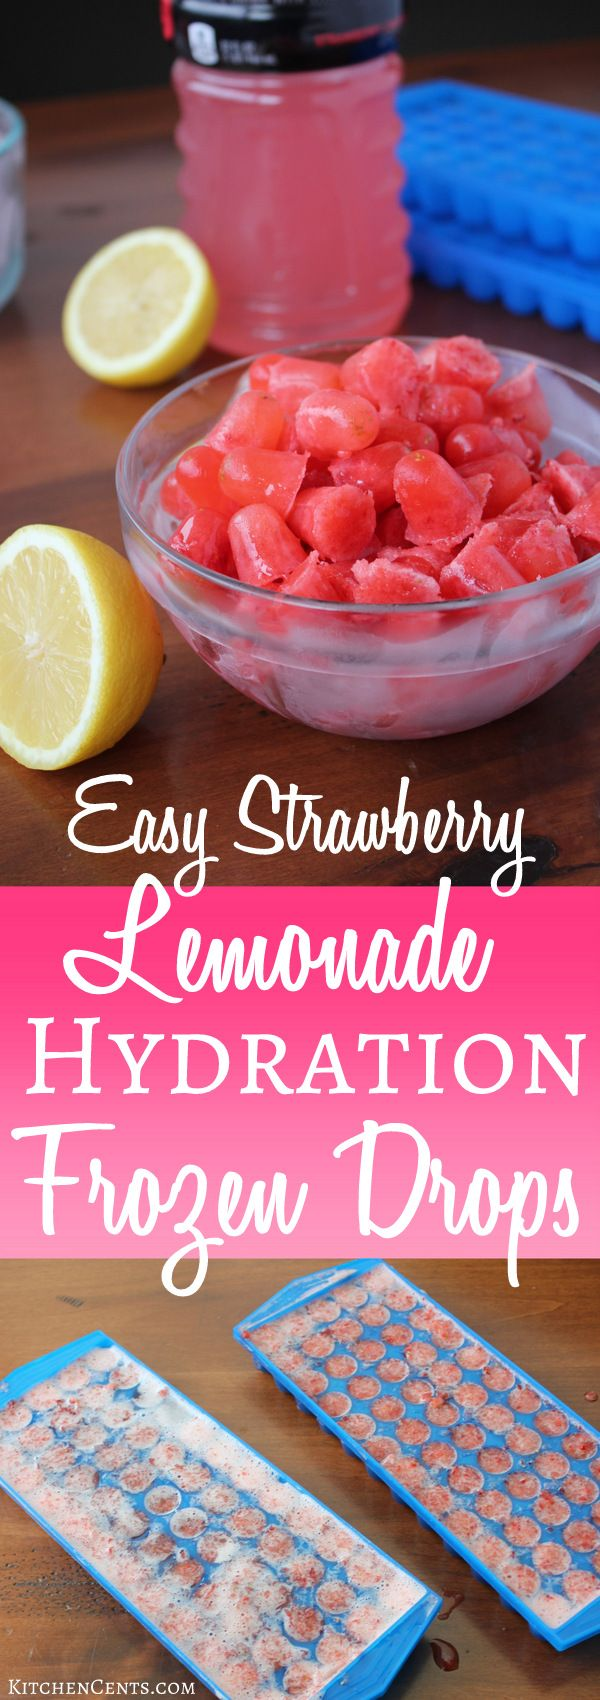 Easy Hydration Popsicles for cold and flu season | KitchenCents.com